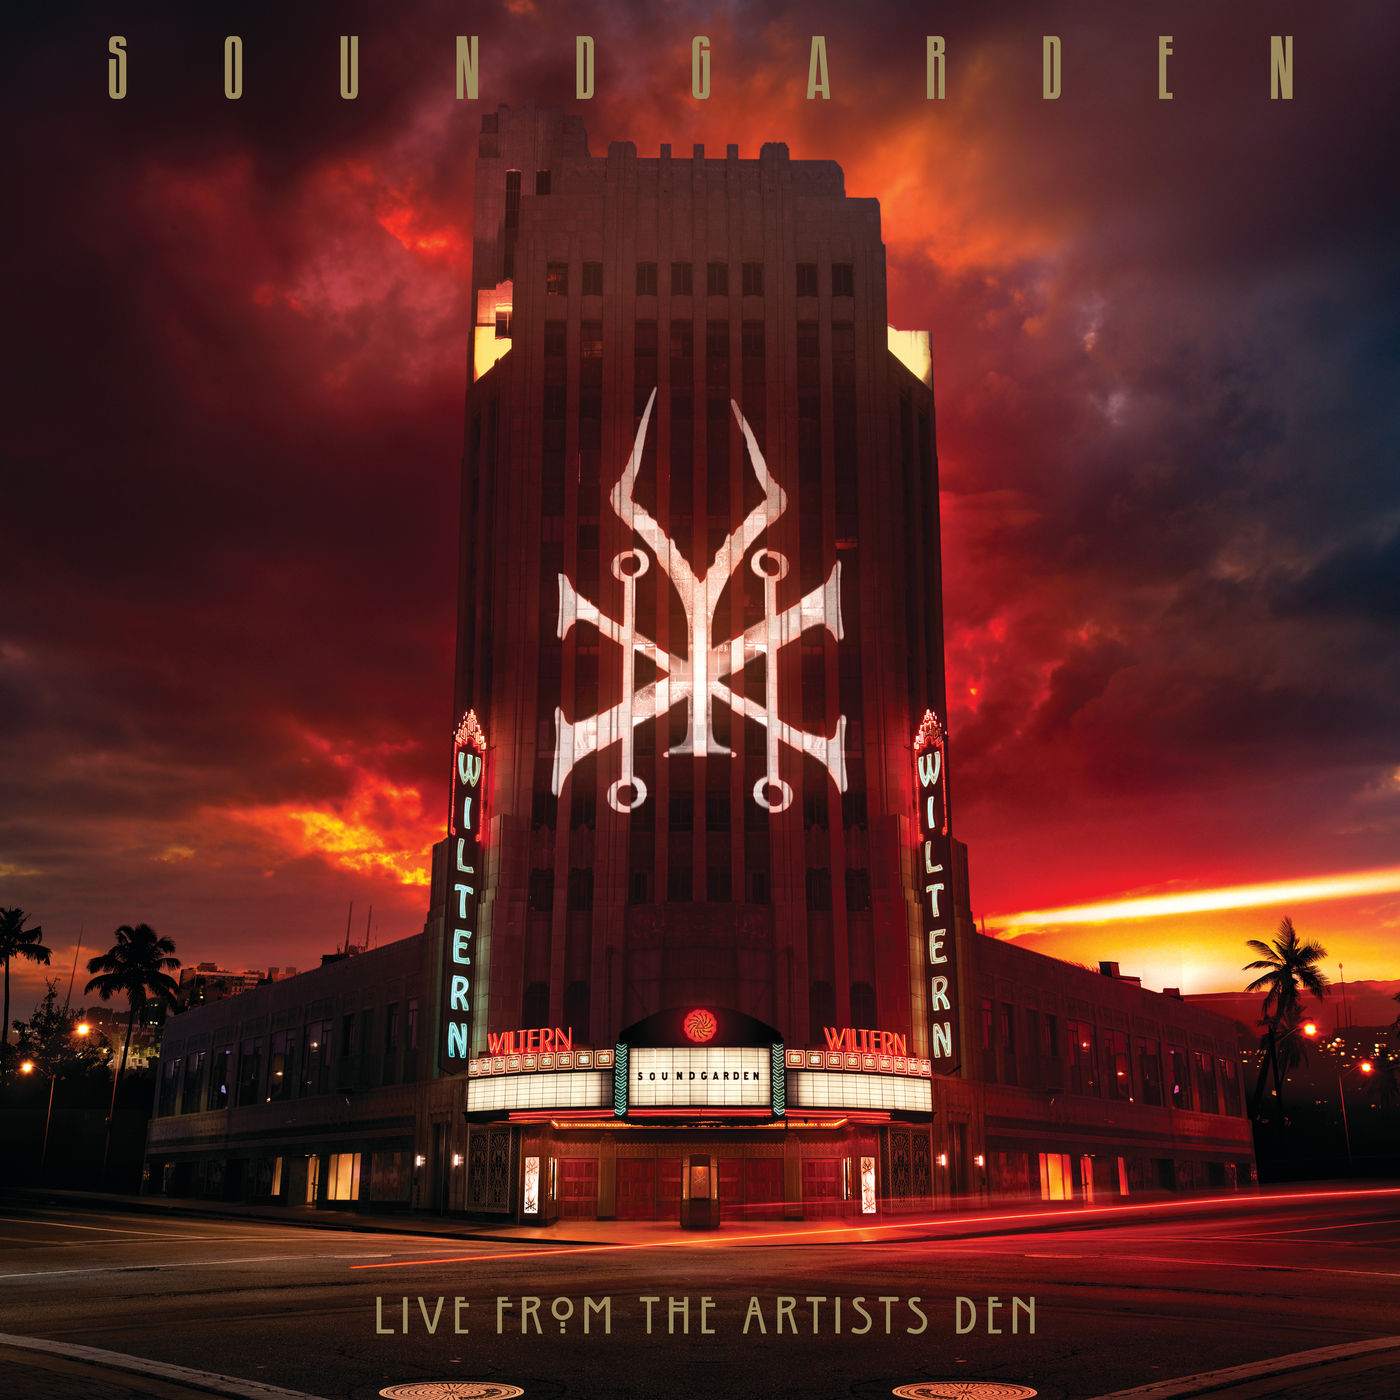 Soundgarden - Live From The Artists Den (2019)